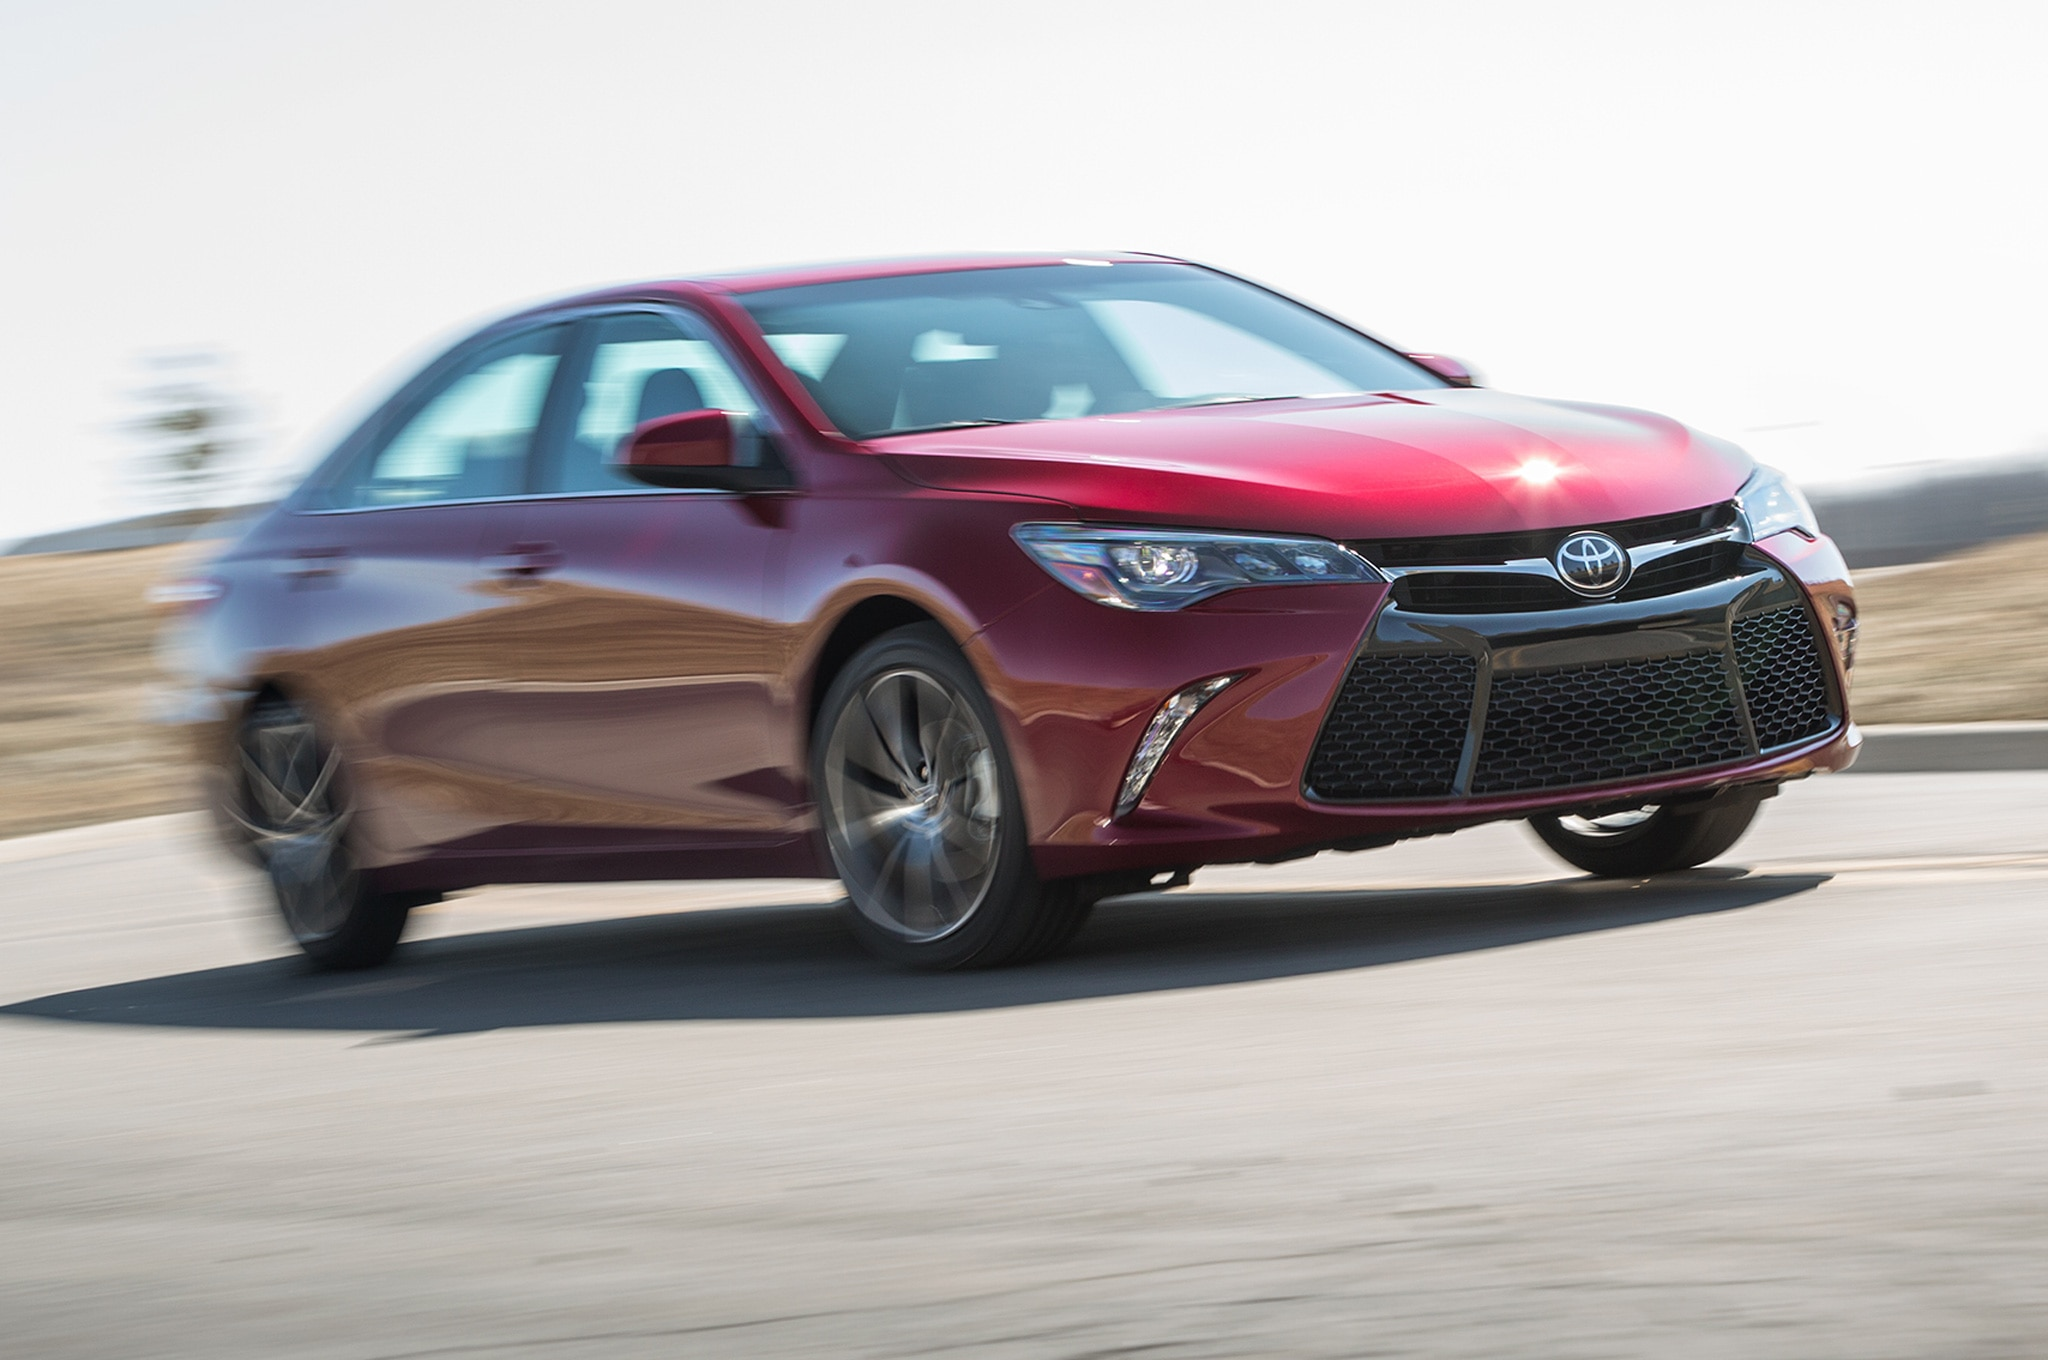 2015 Toyota Camry XSE in motion 2015 camry xse toyota wiring diagram color codes,xse \u2022 indy500 co  at readyjetset.co